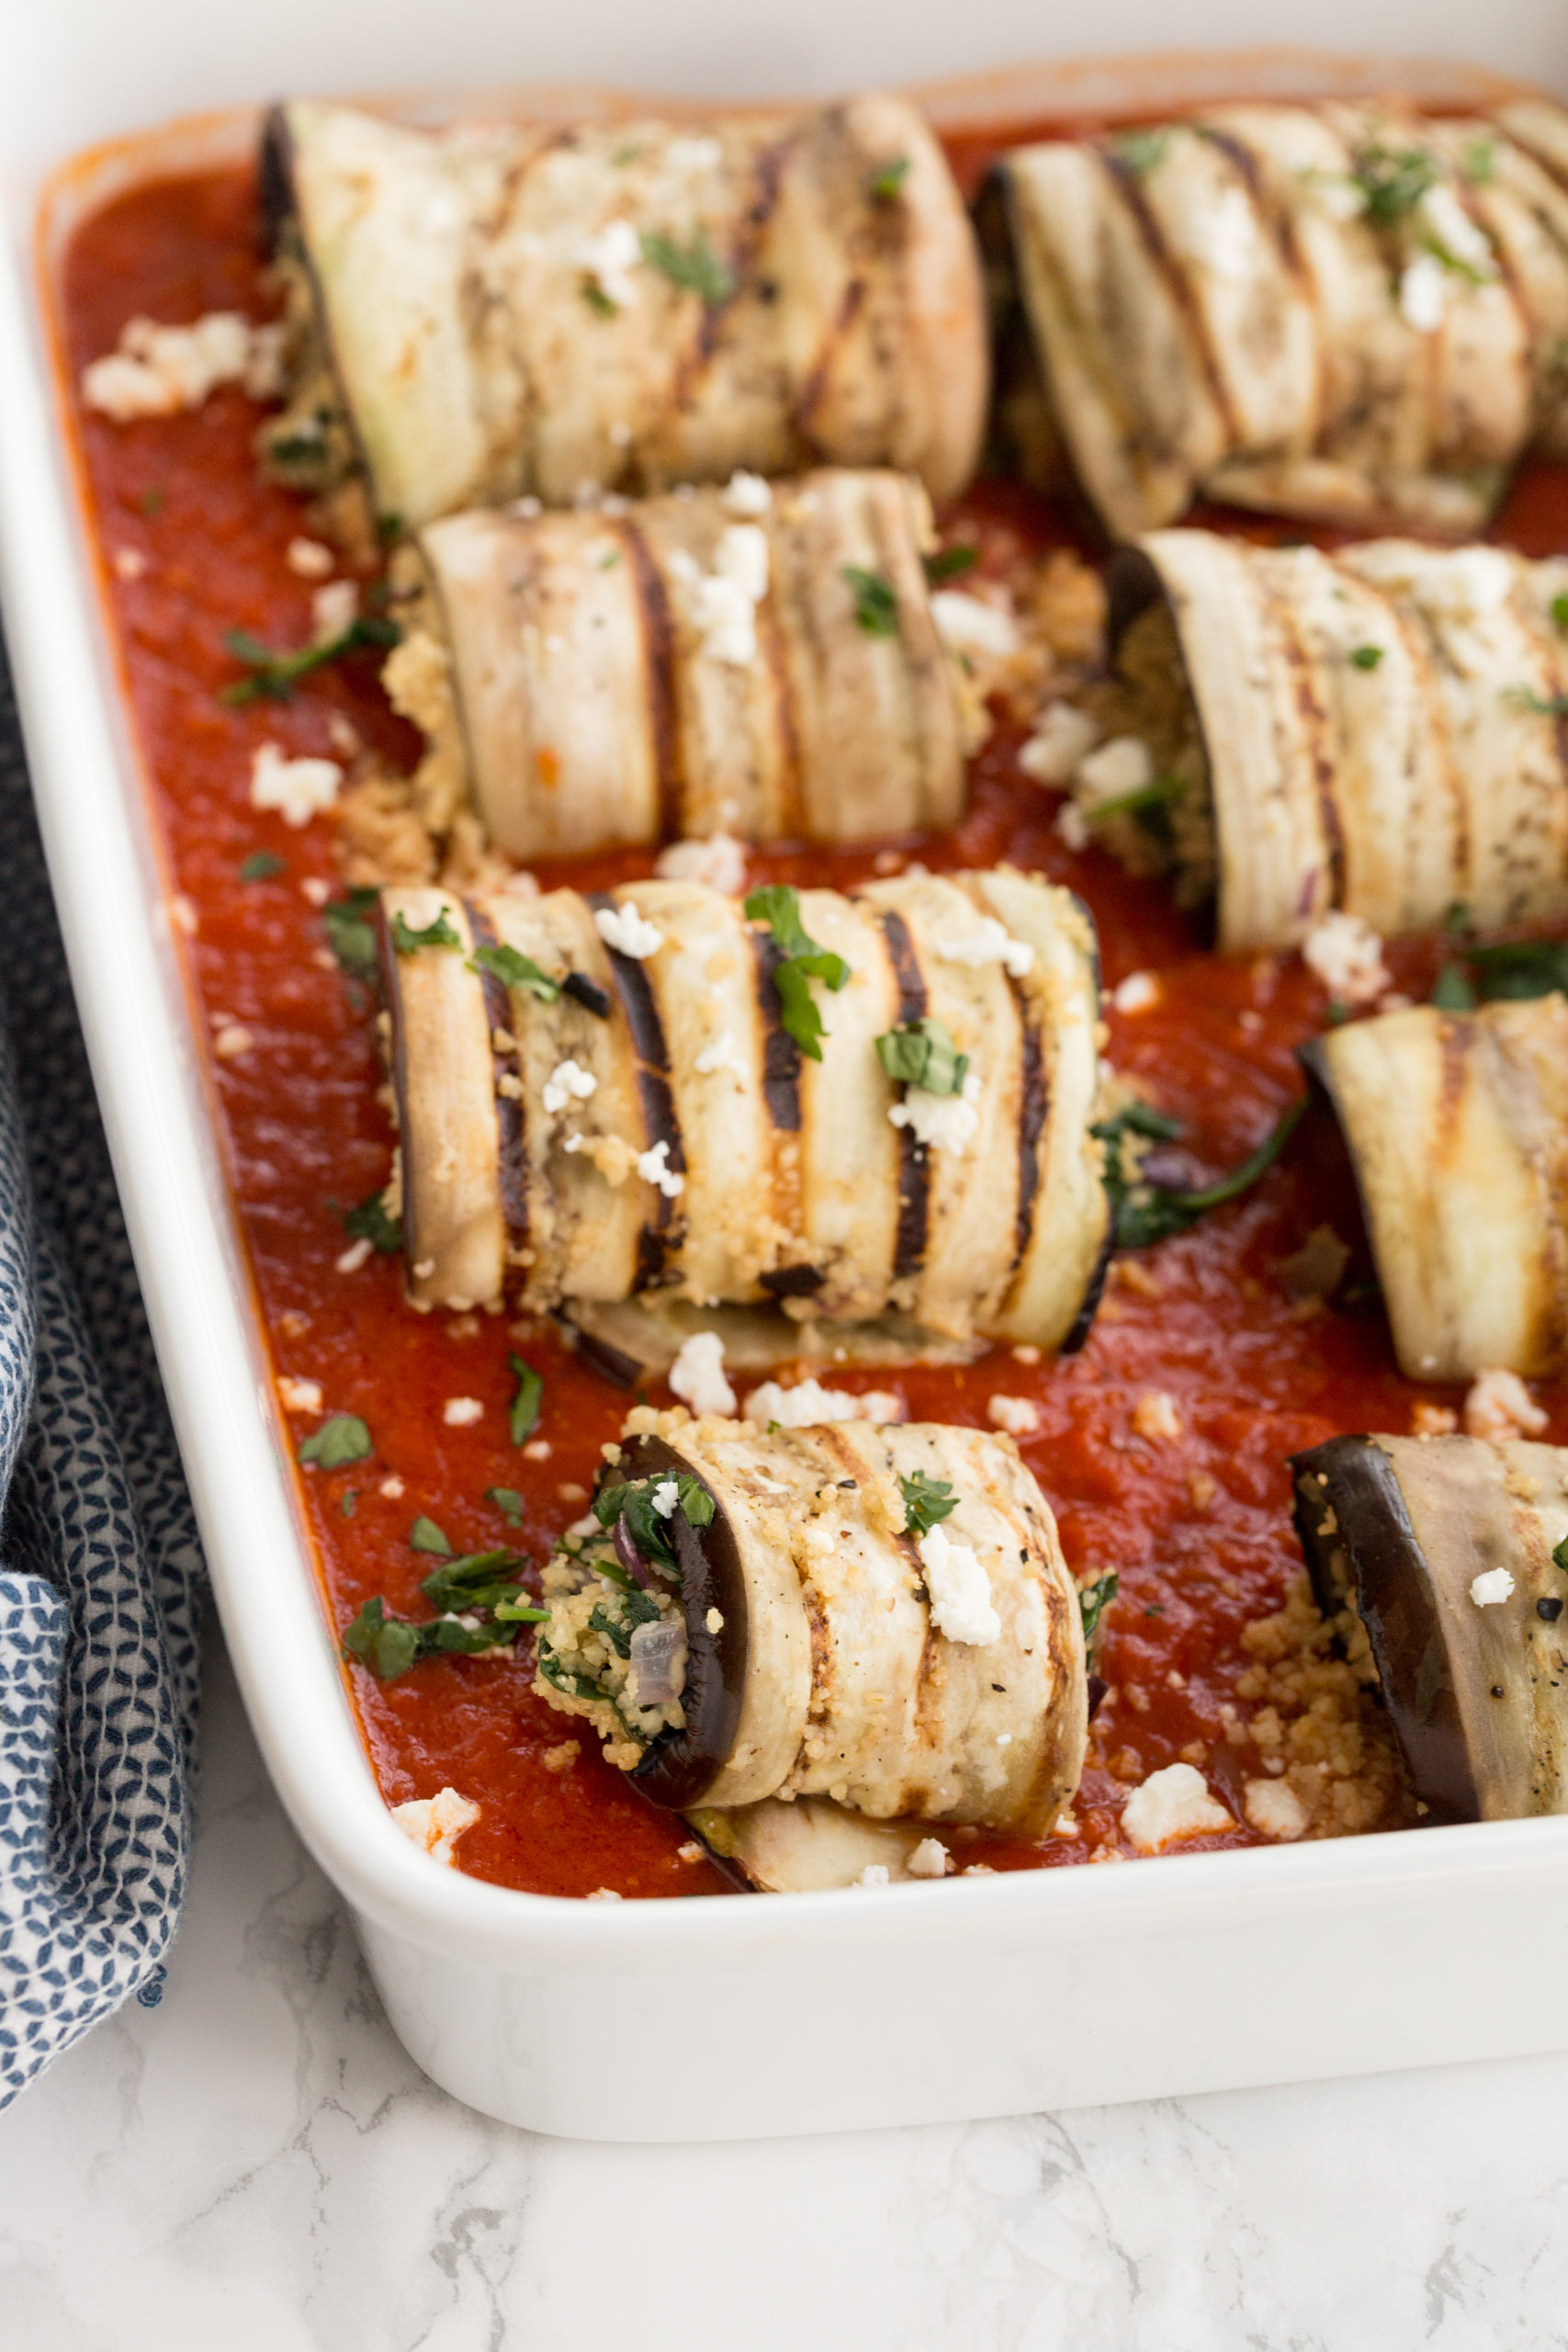 Mediterranean-Eggplant-and-Couscous-Roll-Ups-with-Feta-3-scaled-1